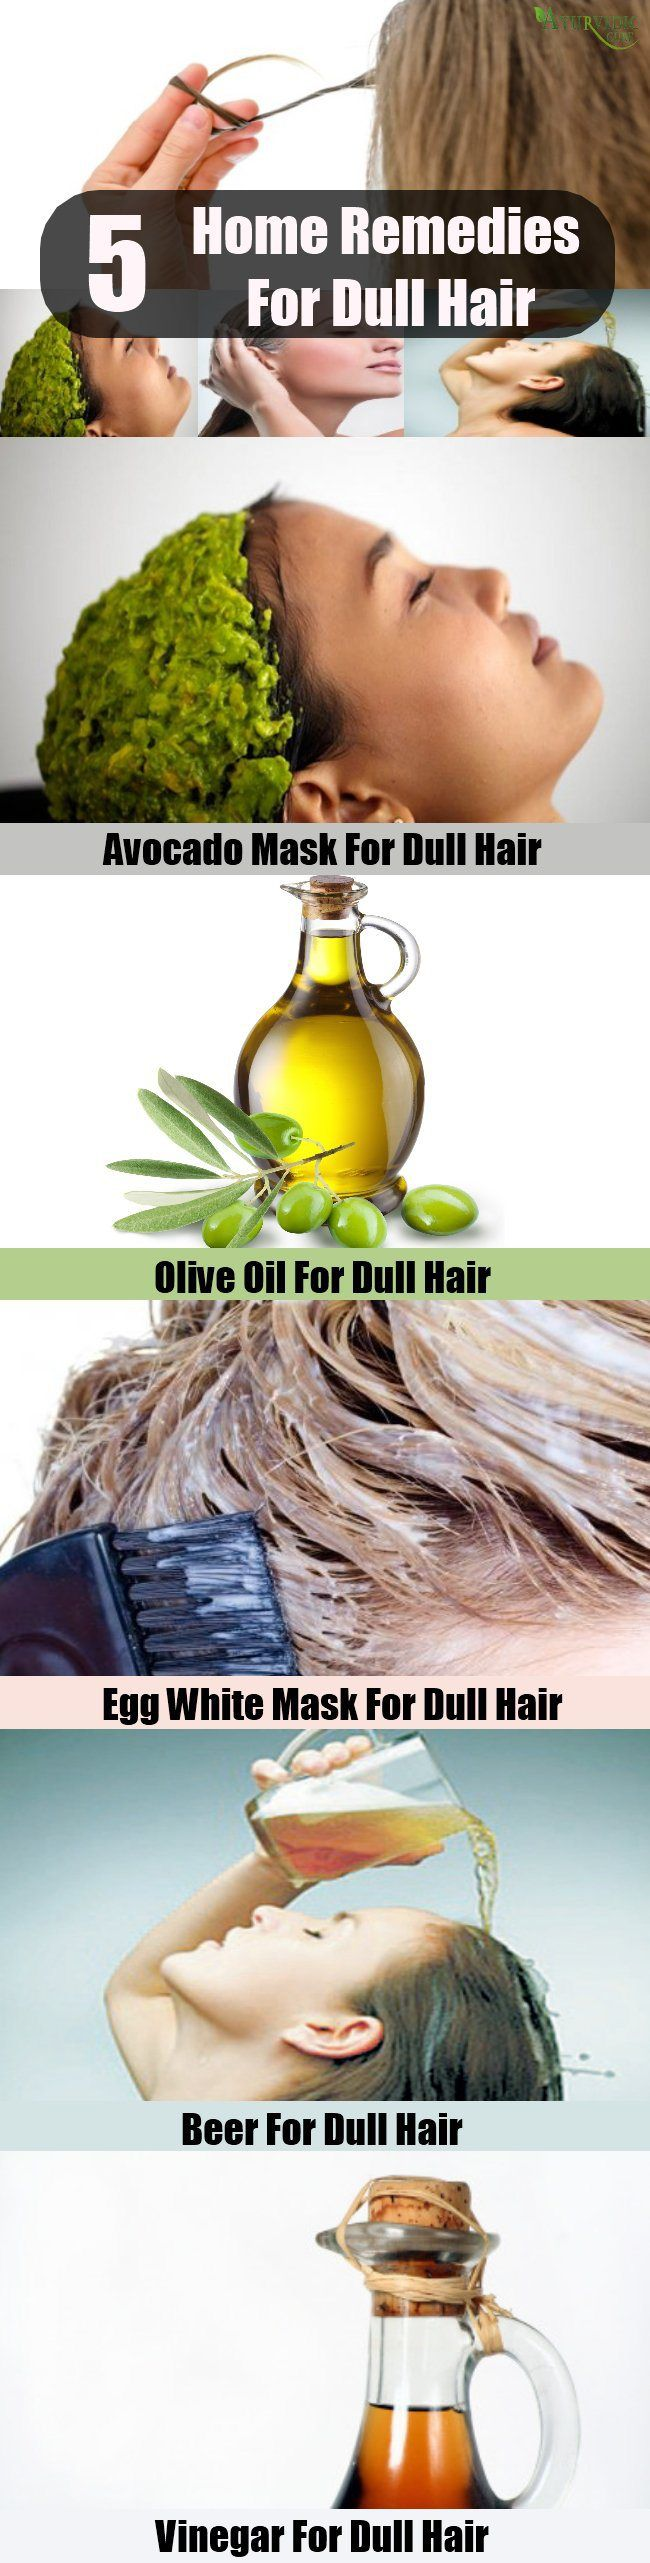 Top 5 Home Remedies For Dull Hair